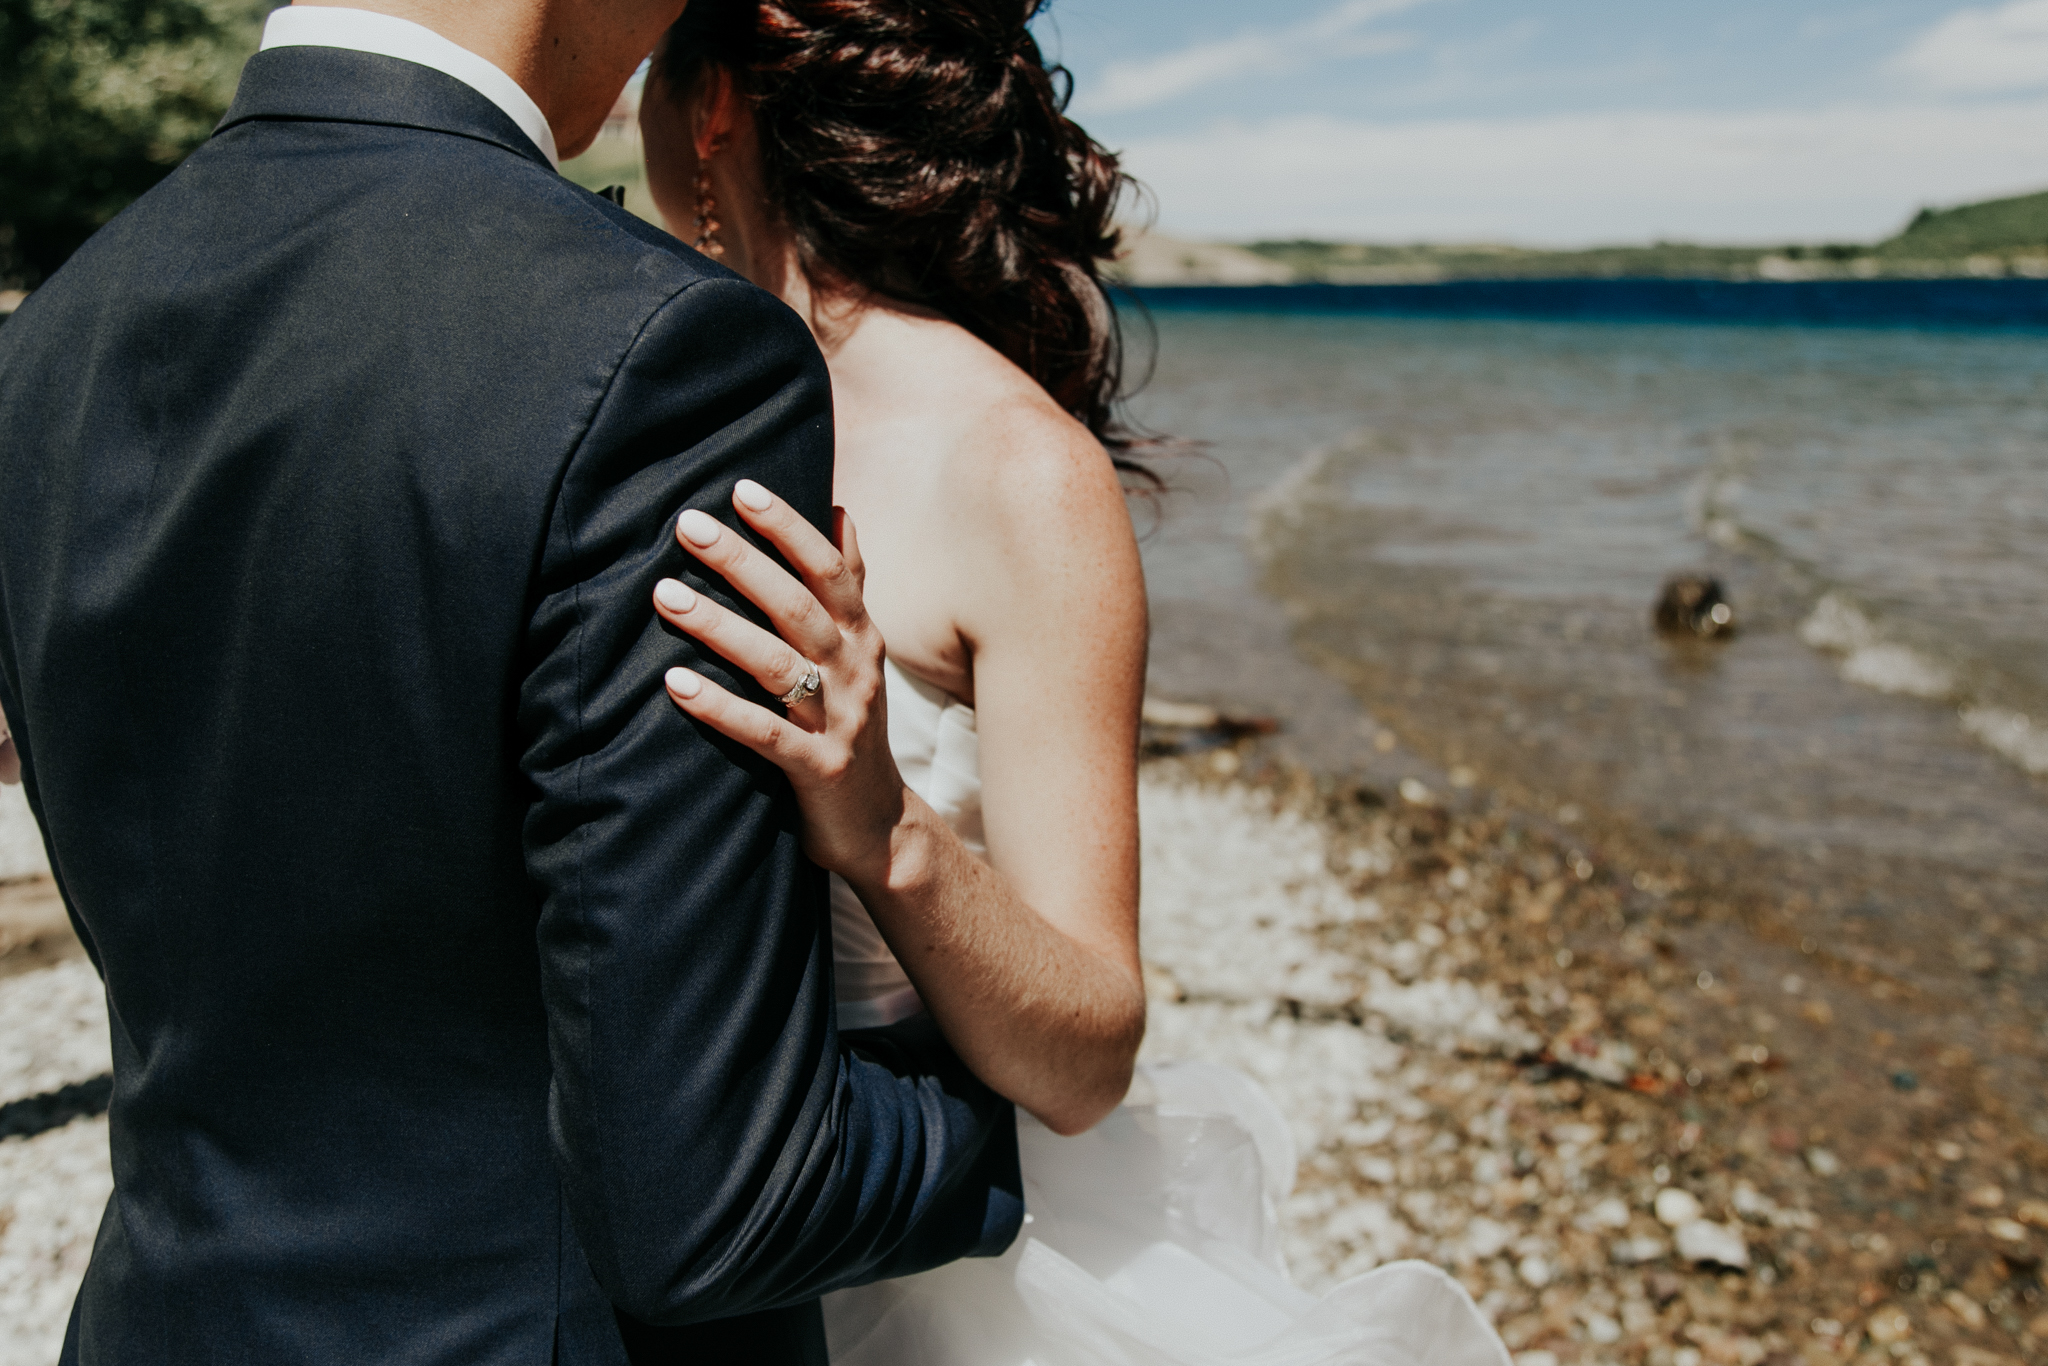 waterton-wedding-photographer-love-and-be-loved-photography-lethbridge-calgary-adam-jodie-image-picture-photo-58.jpg